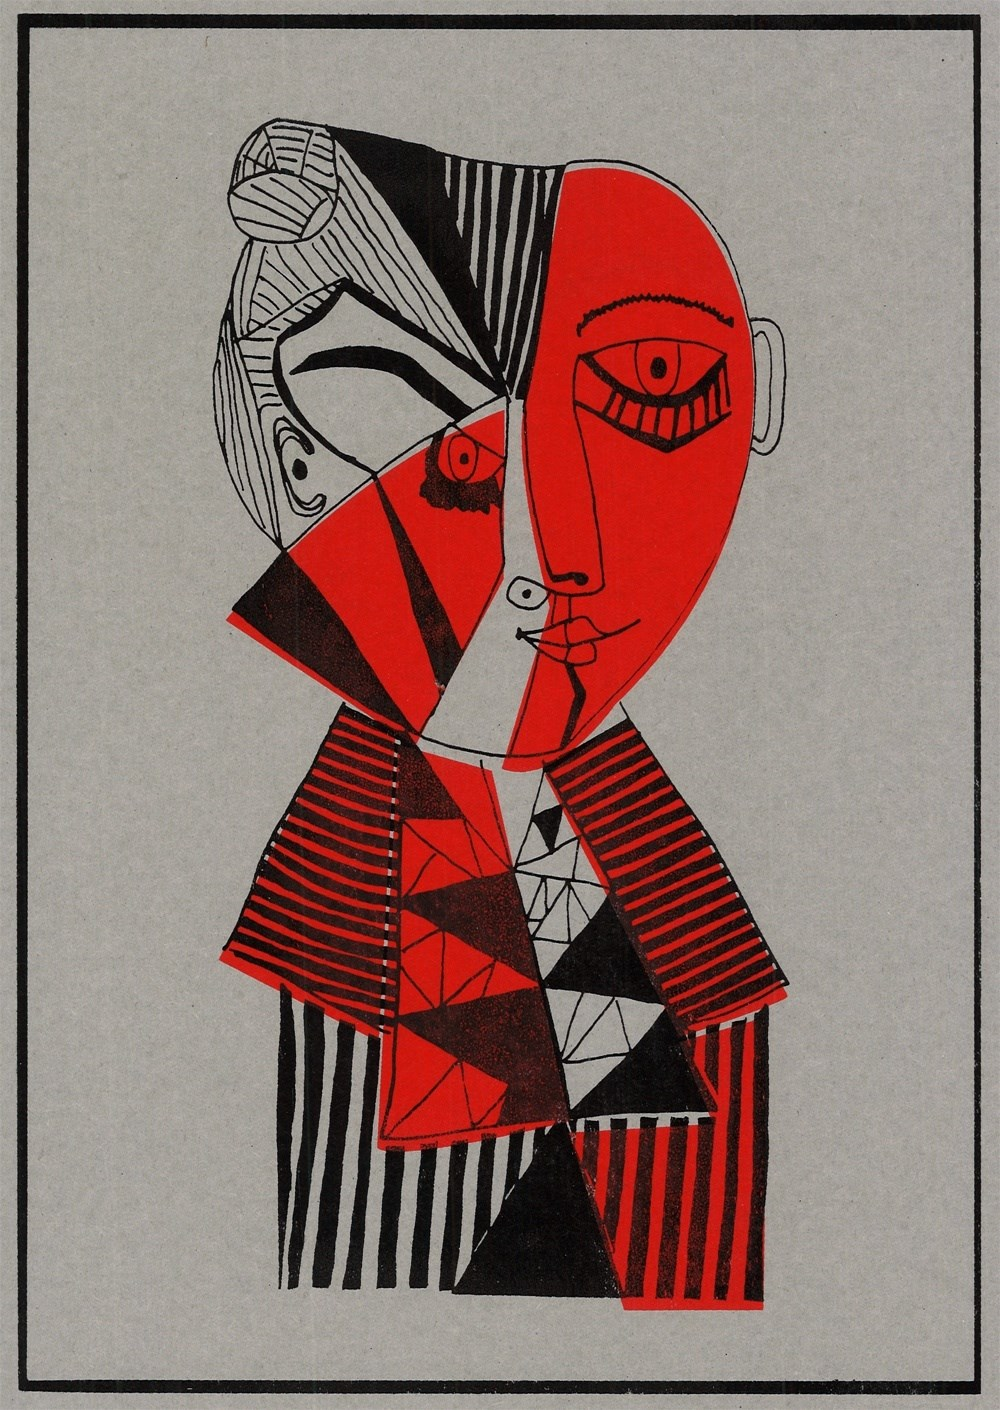 Mulher Multifacetada , original Abstract Card Drawing and Illustration by Inês Peres